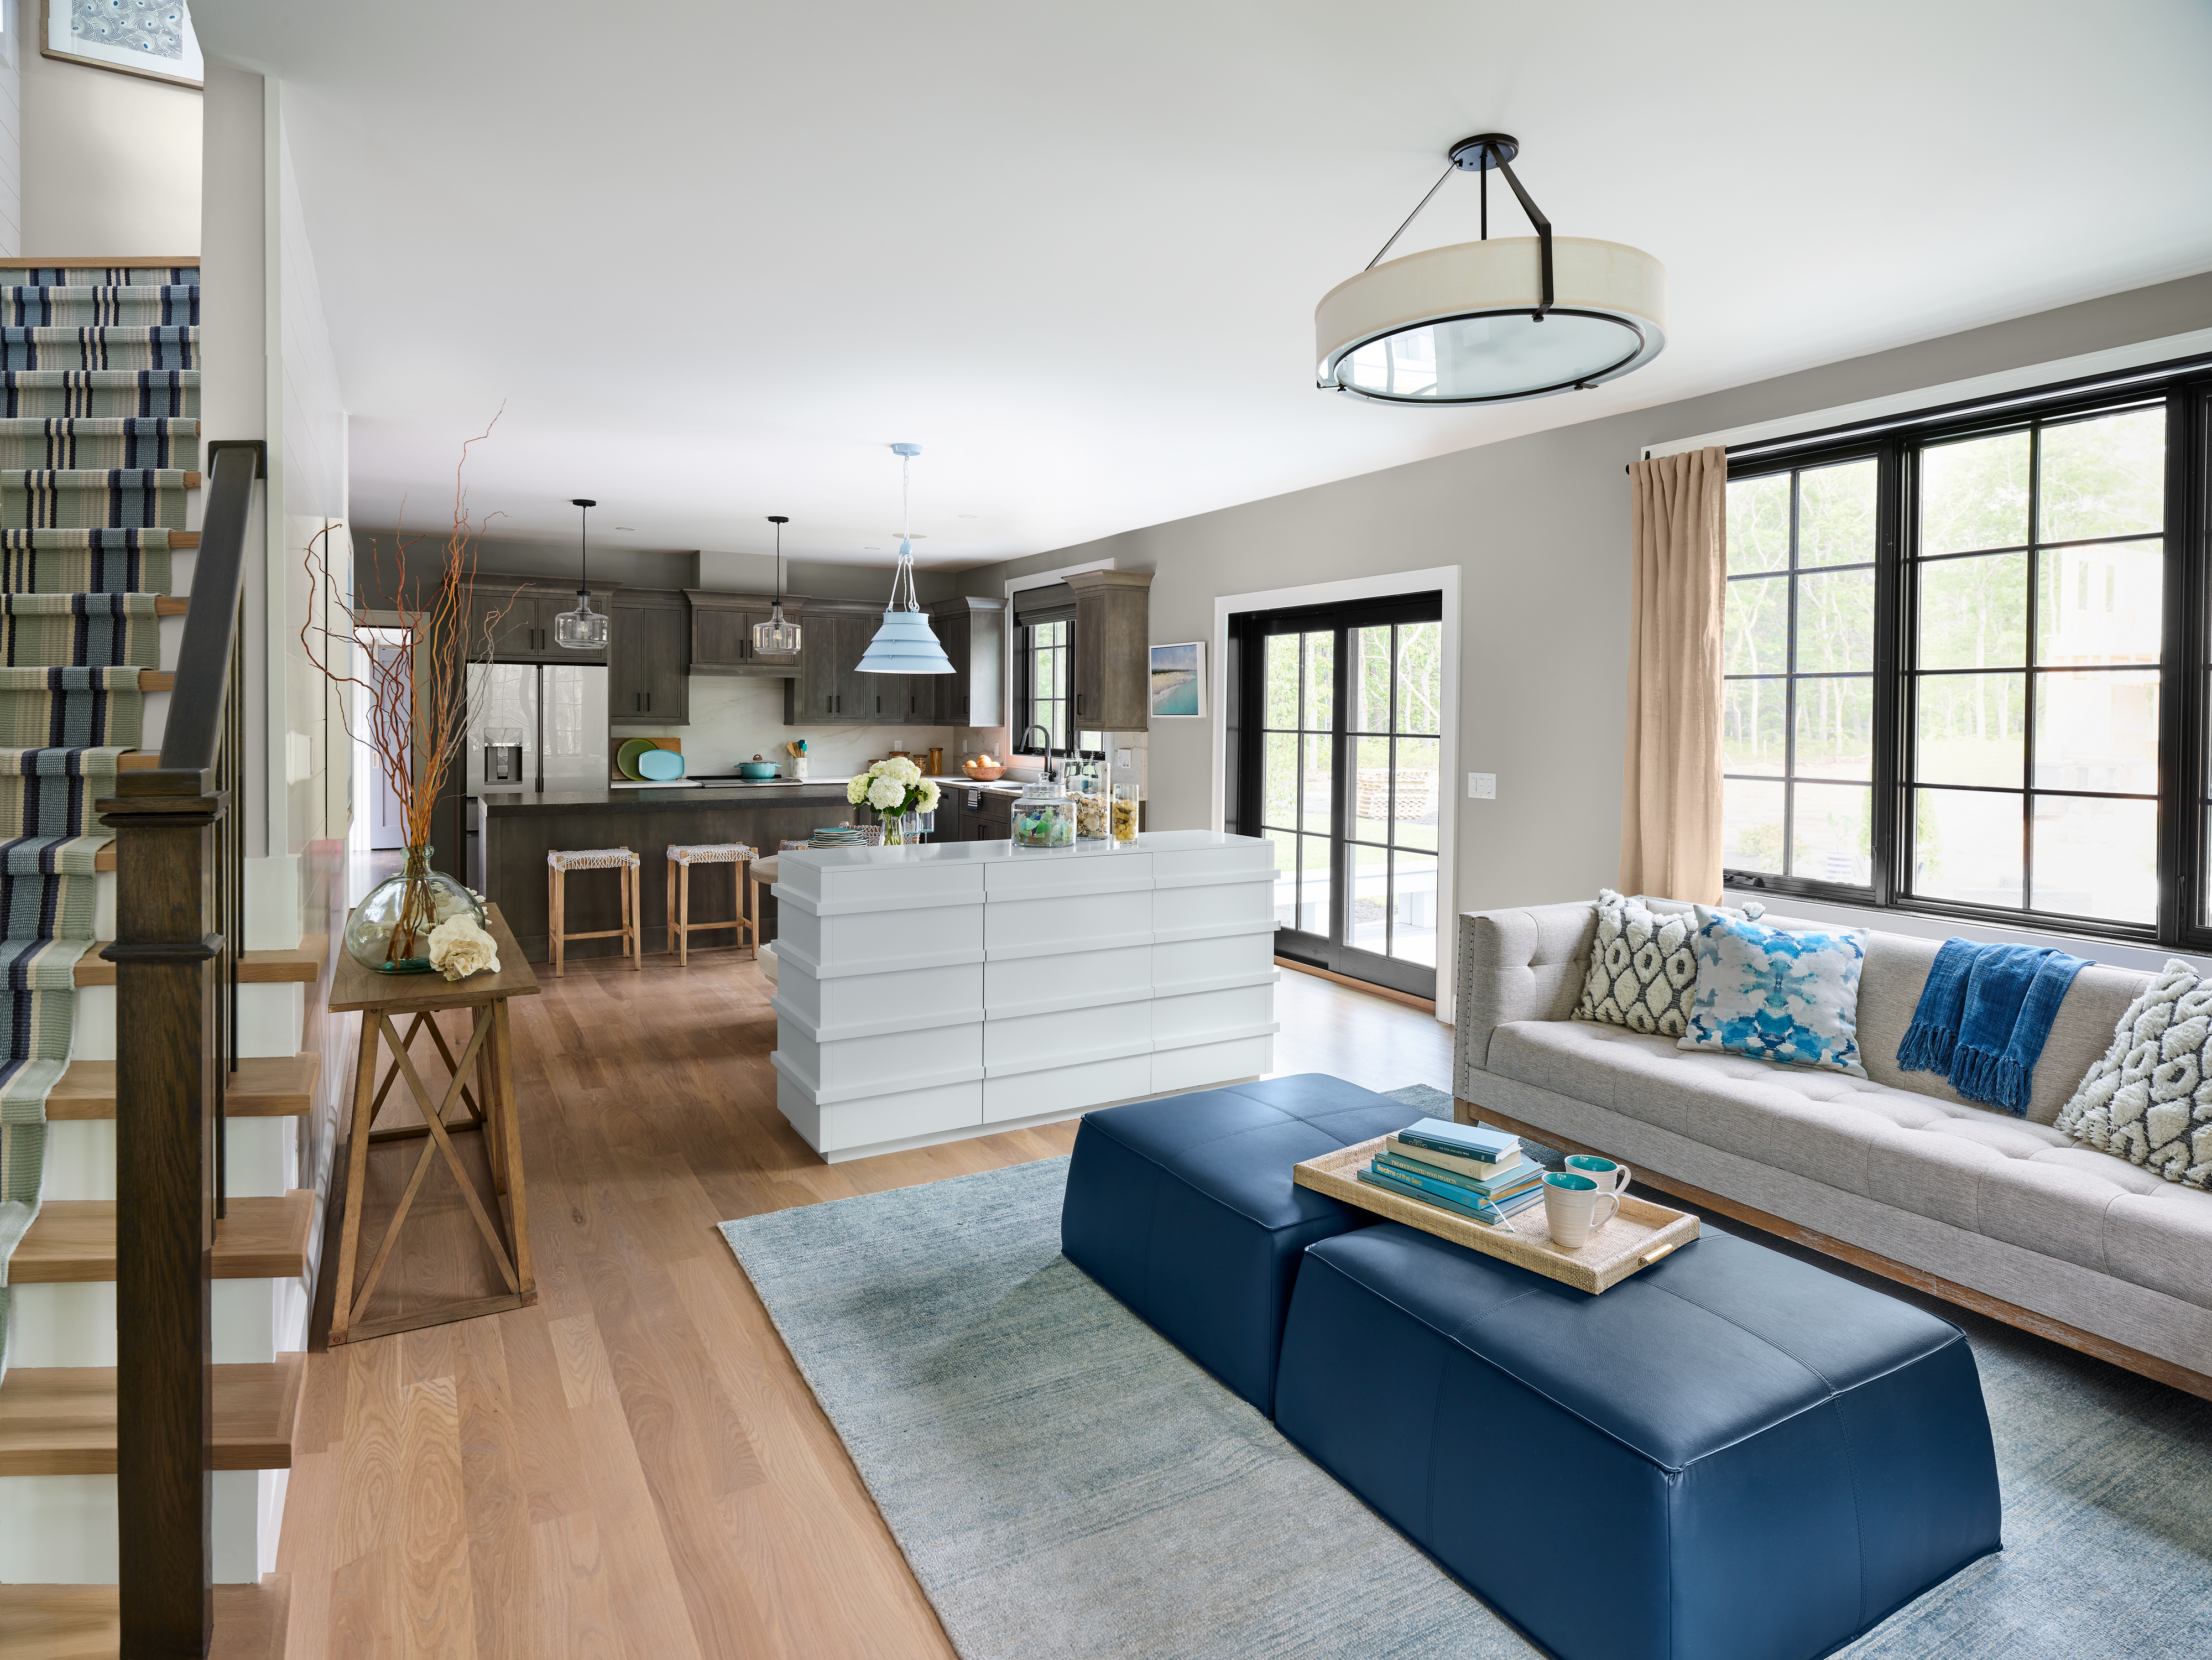 Cottage on the Cape, Idea House 2020, First Floor, Sep/Oct 2020